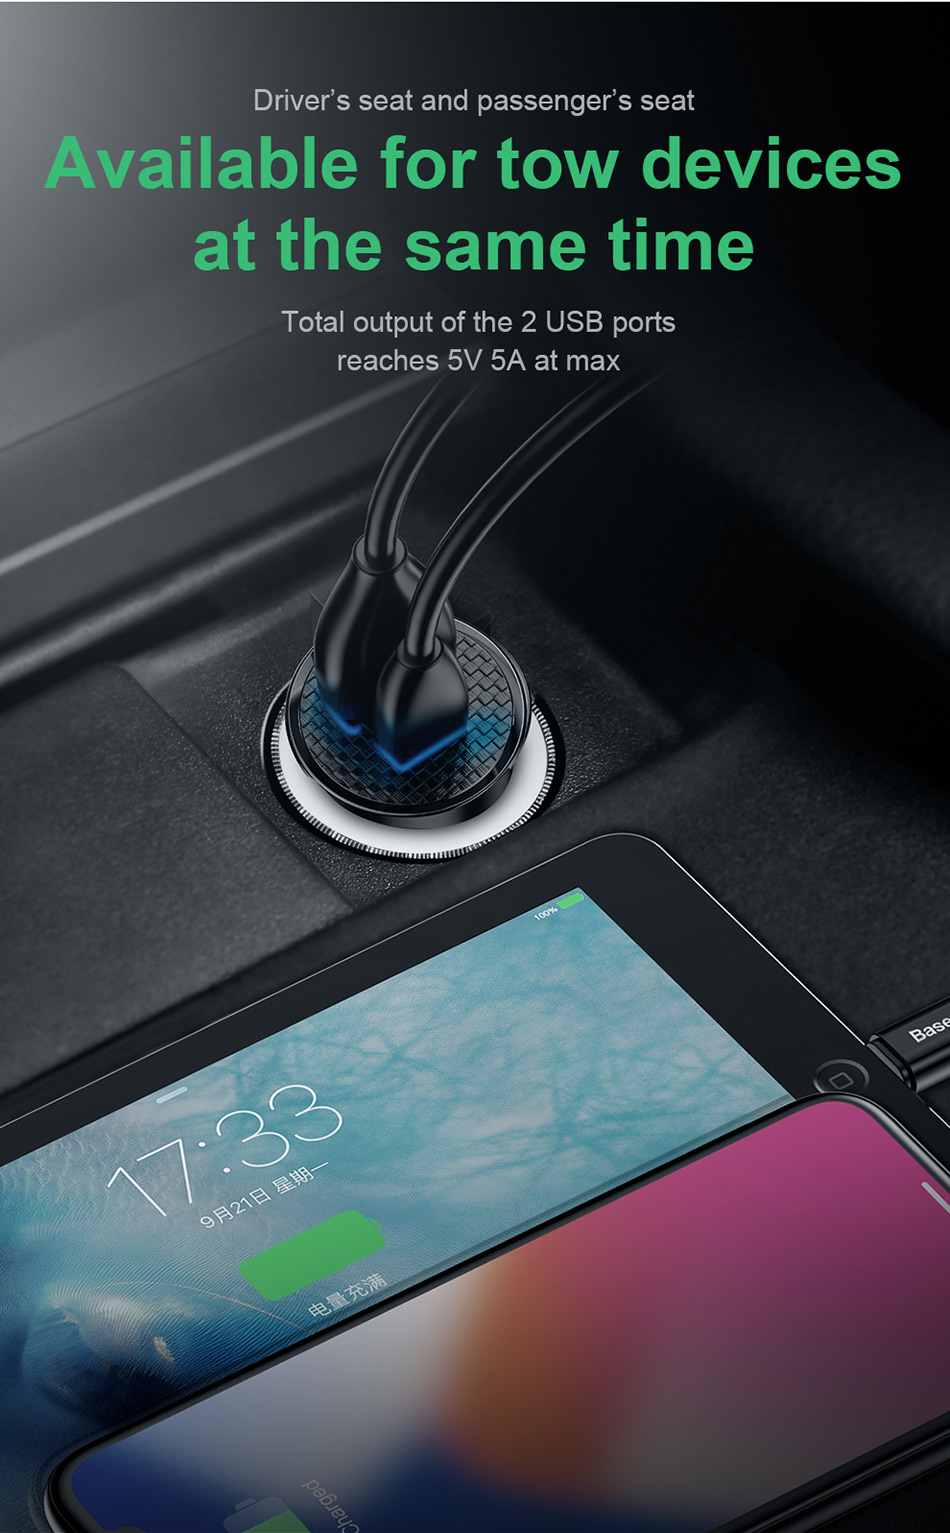 Baseus Quick Charge 4.0 3.0 USB Car Charger For Xiaomi mi 9 Huawei P30 Pro QC4.0 QC3.0 QC 5A Fast PD Car Charging Phone Charger-in Car Chargers from Cellphones & Telecommunications on Aliexpress.com | Alibaba Group 8